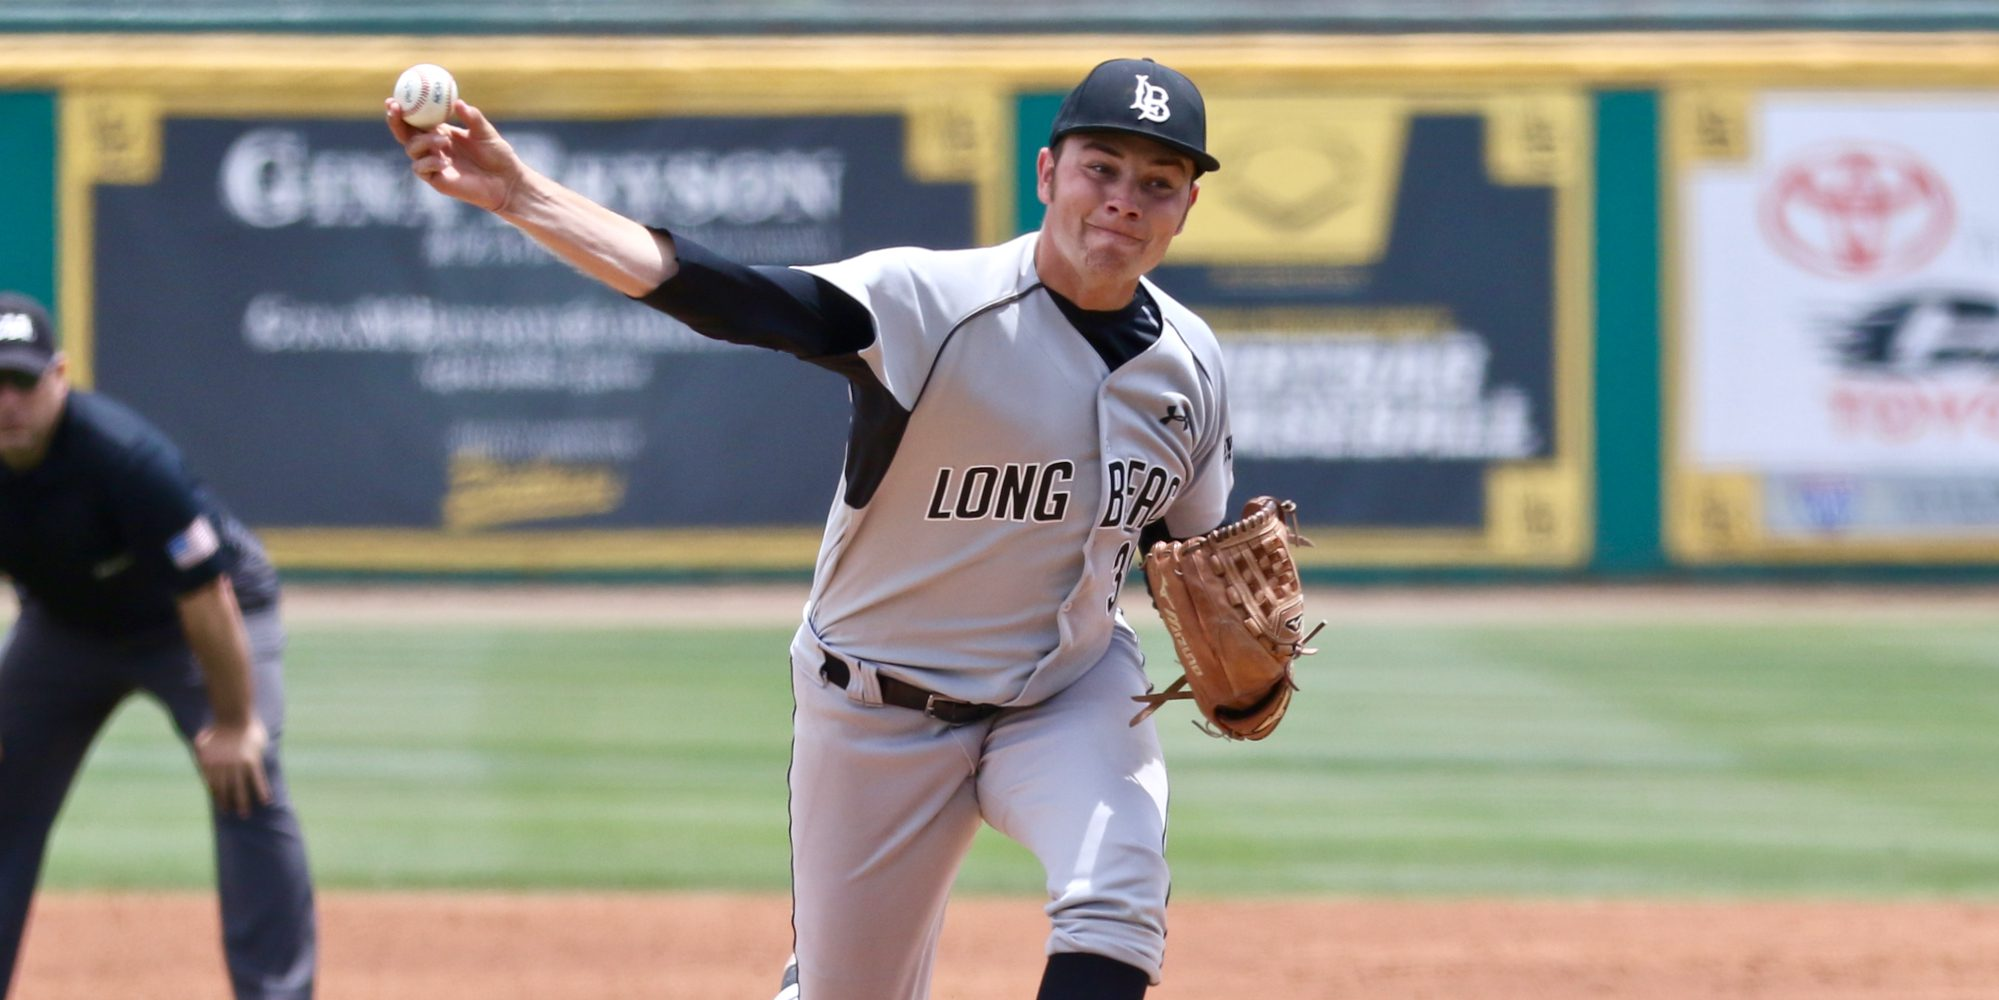 Gavin dominant for Titans in 12-0 win over Long Beach State